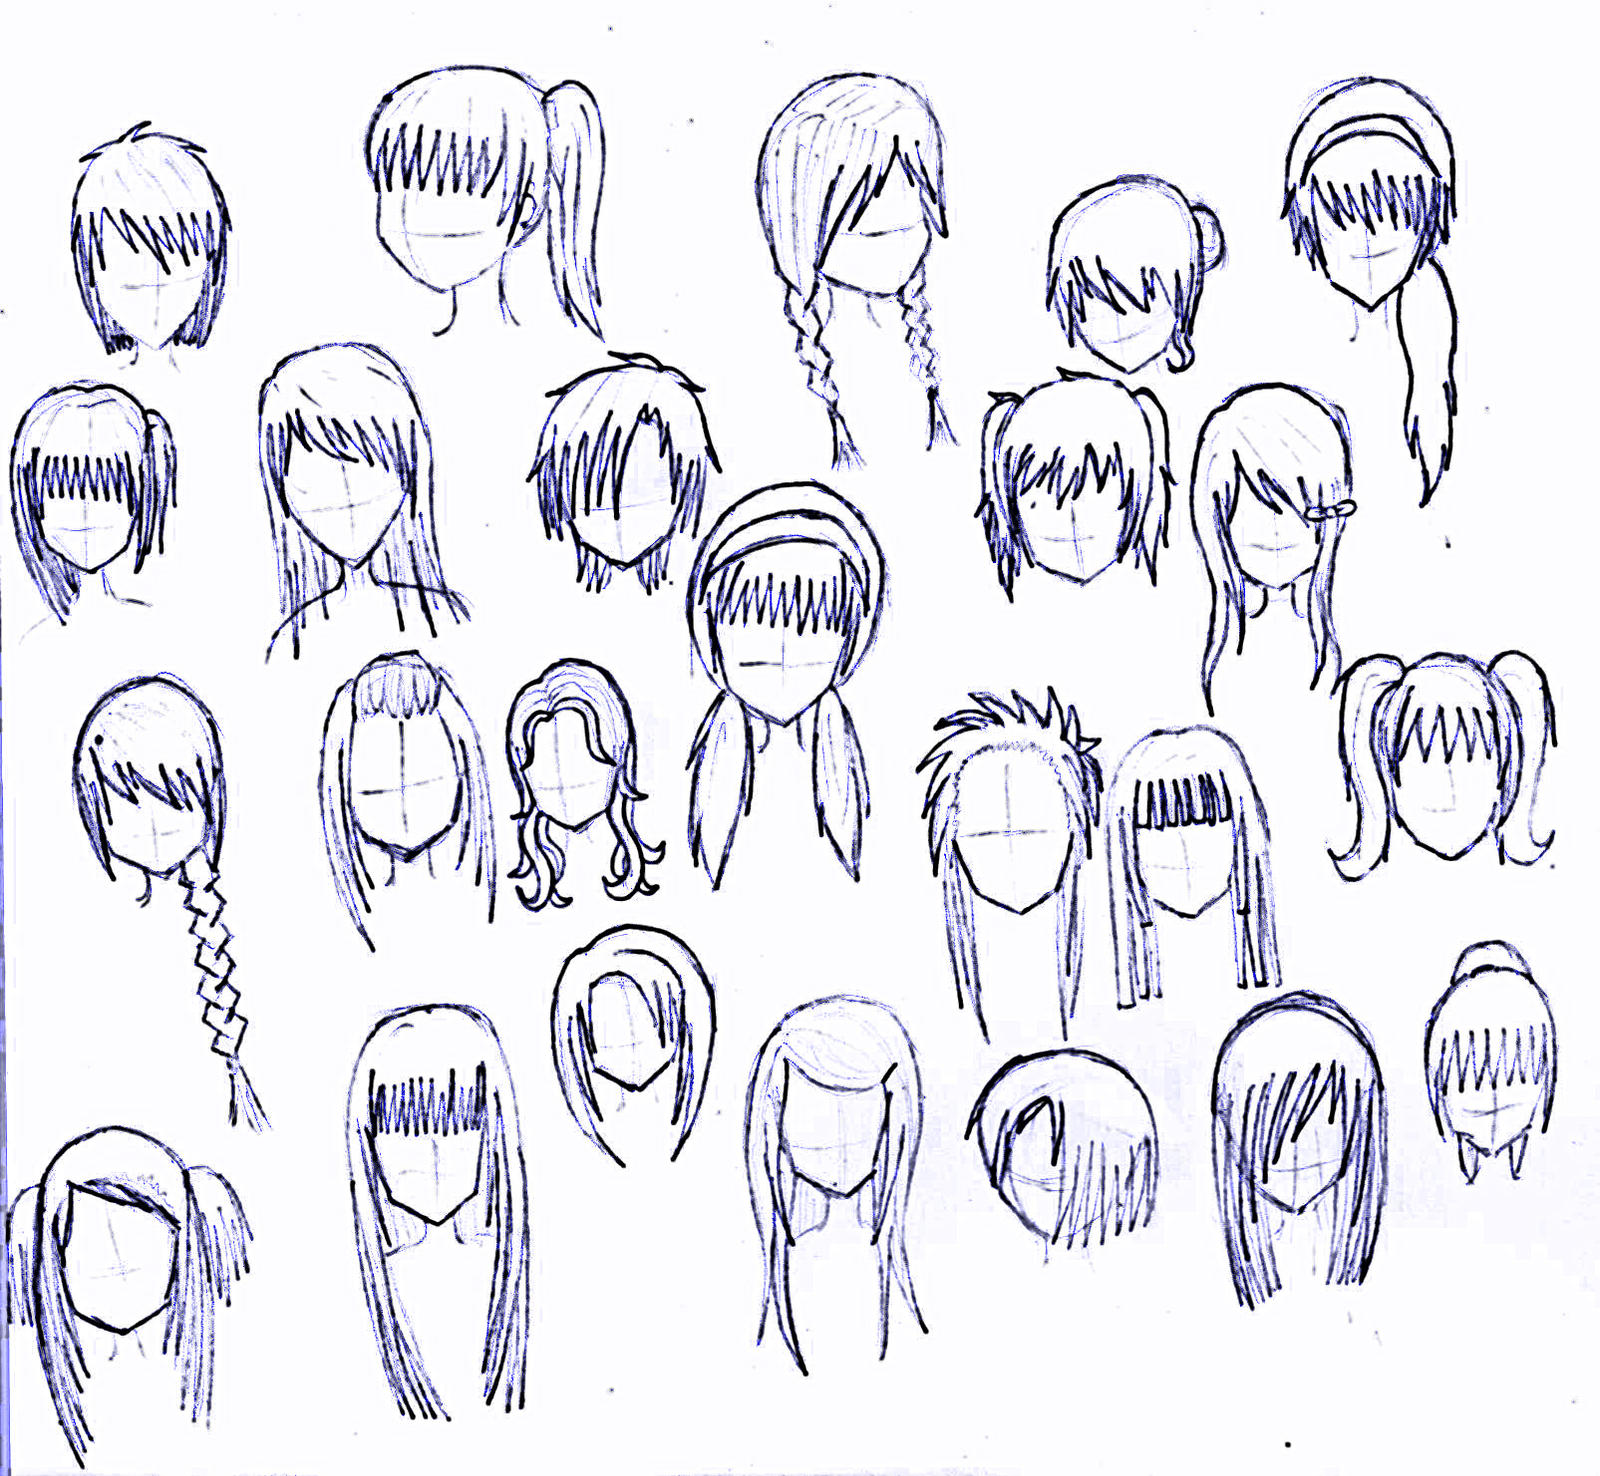 24 girls hairstyles by matsudakeiko manga anime digital media drawings ...